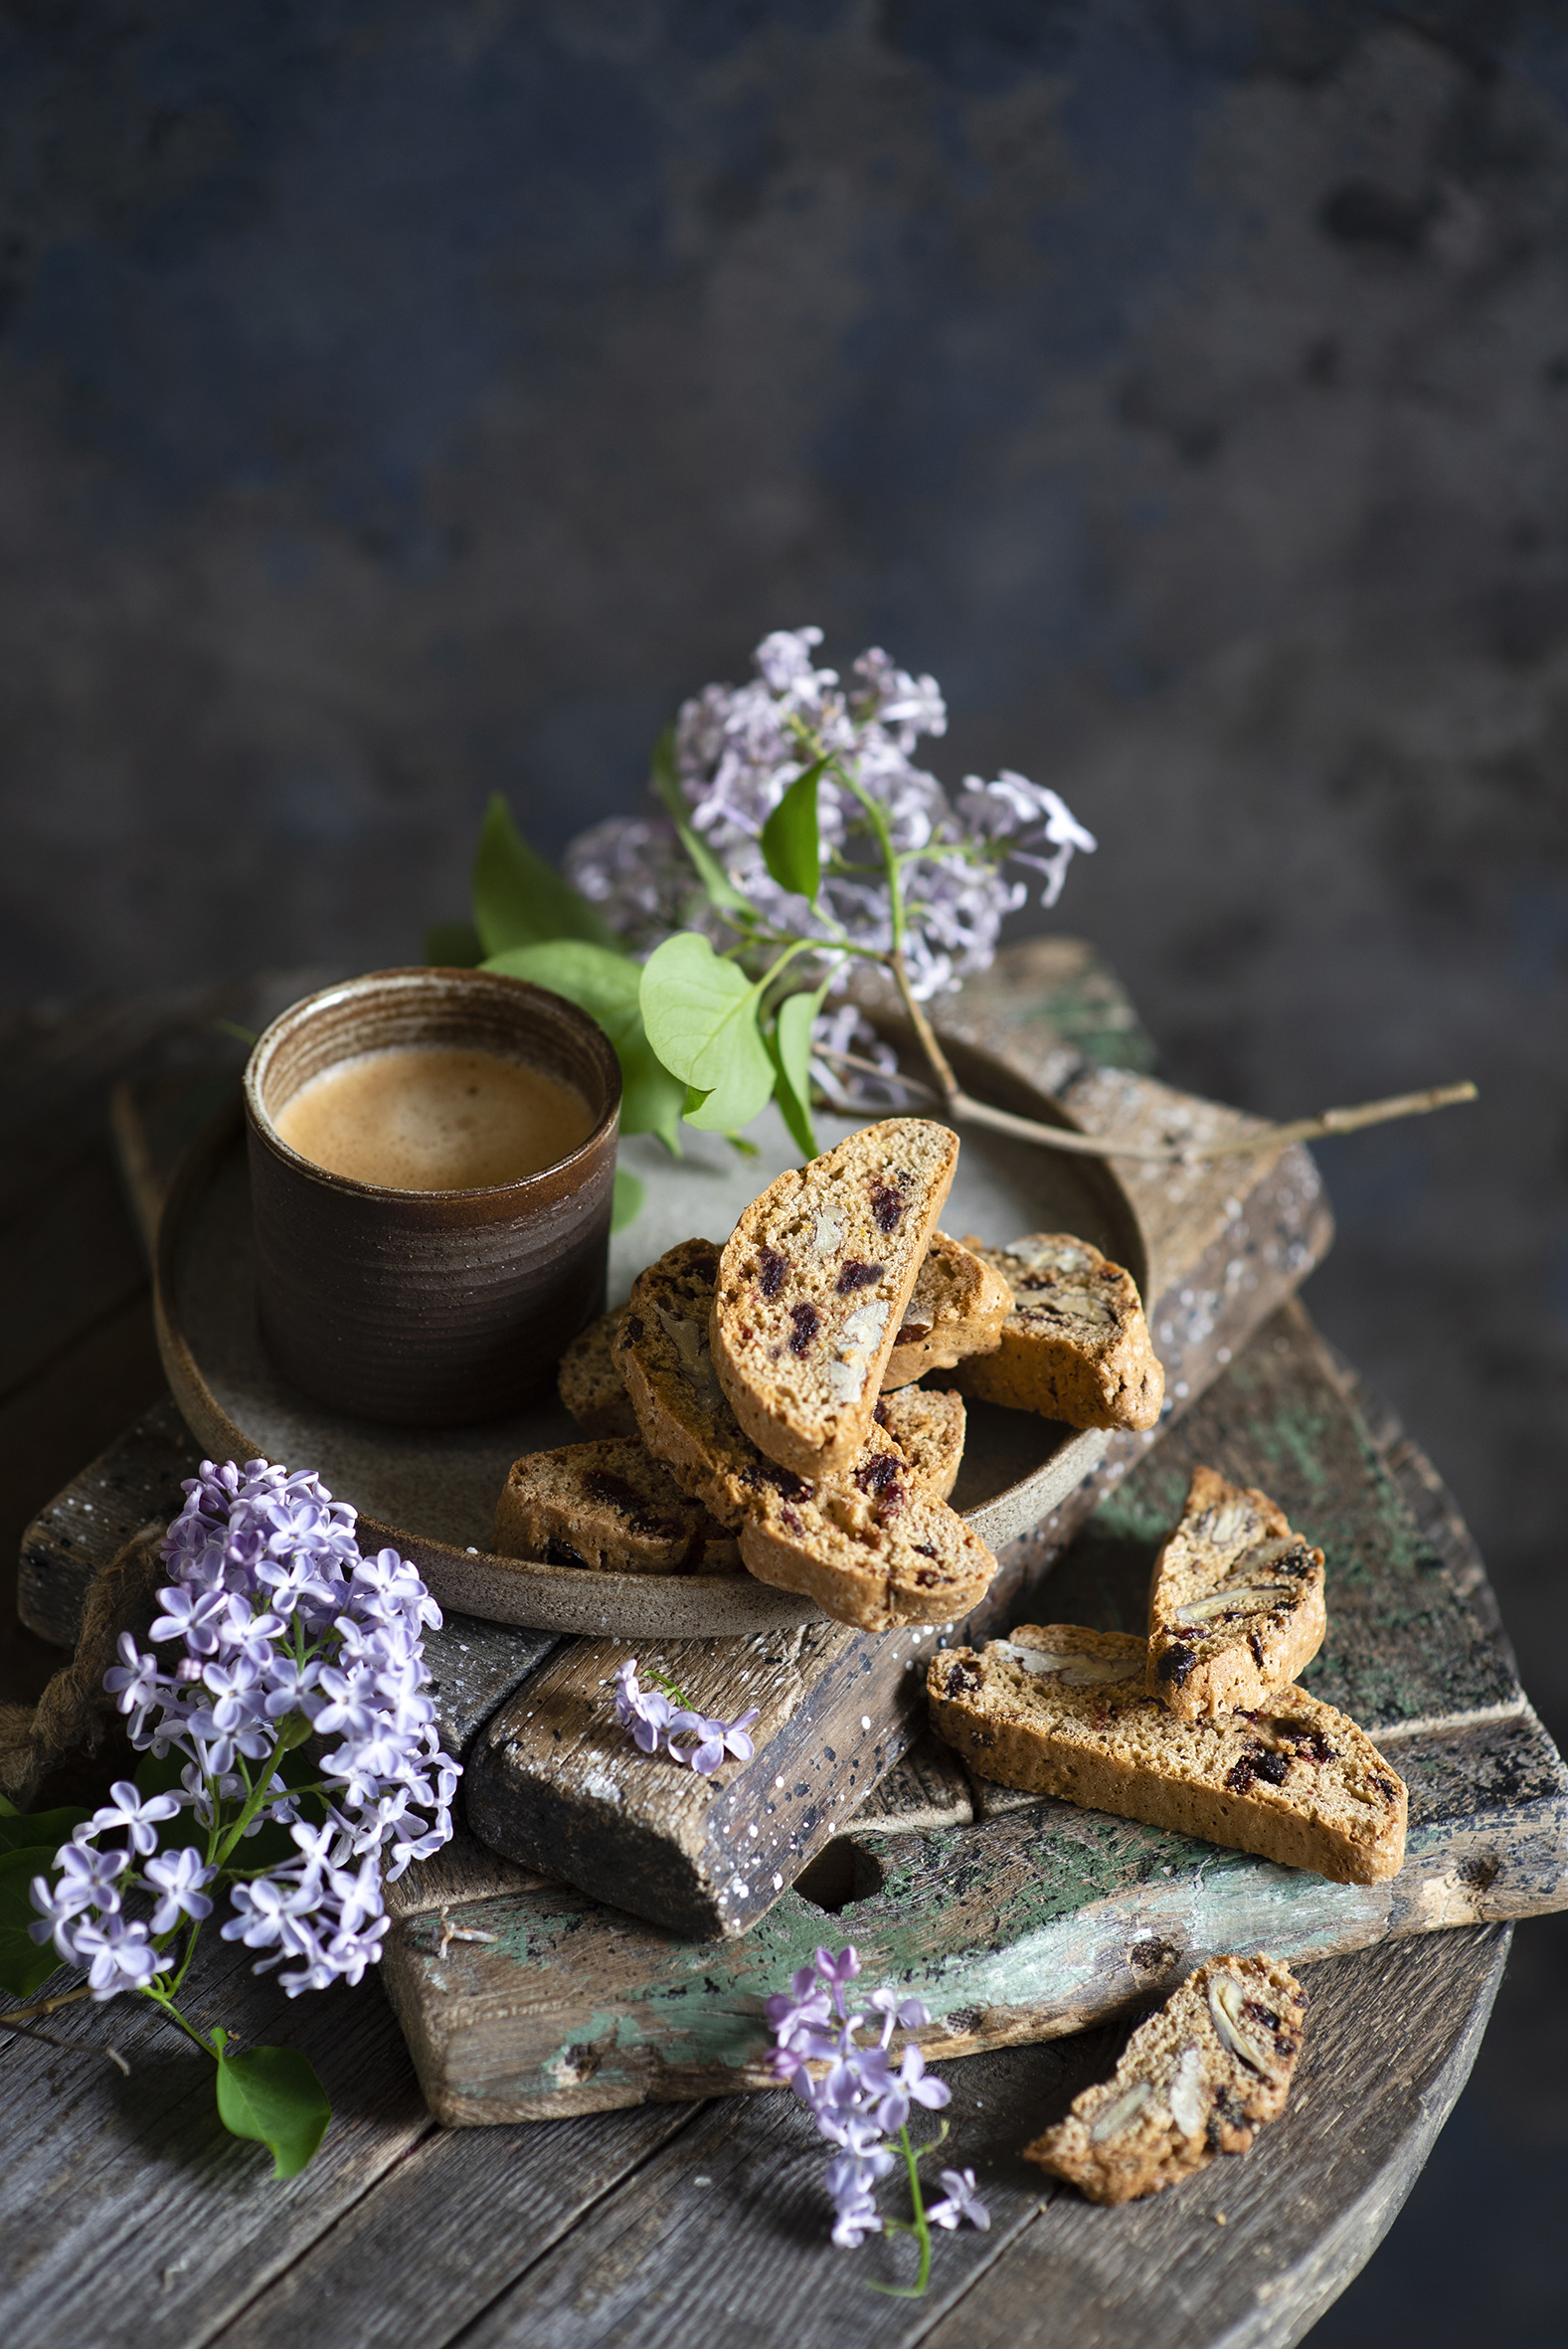 Images Coffee Cappuccino Lilac Mug Food Branches Pastry boards  for Mobile phone Syringa baking Wood planks